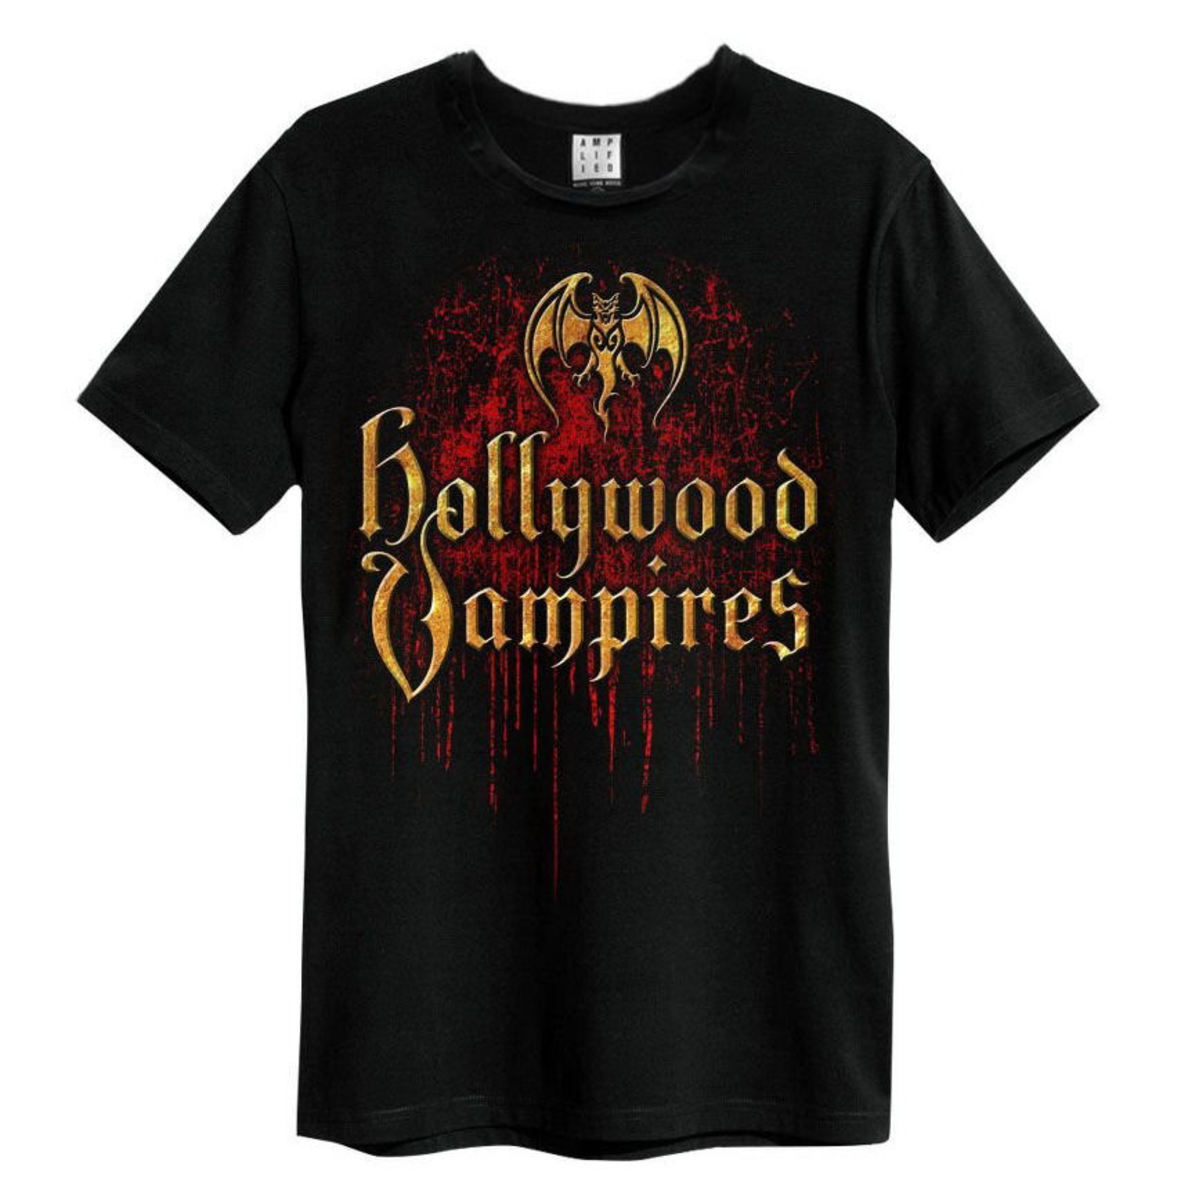 AMPLIFIED Hollywood Vampires Bat Blood Logo černá